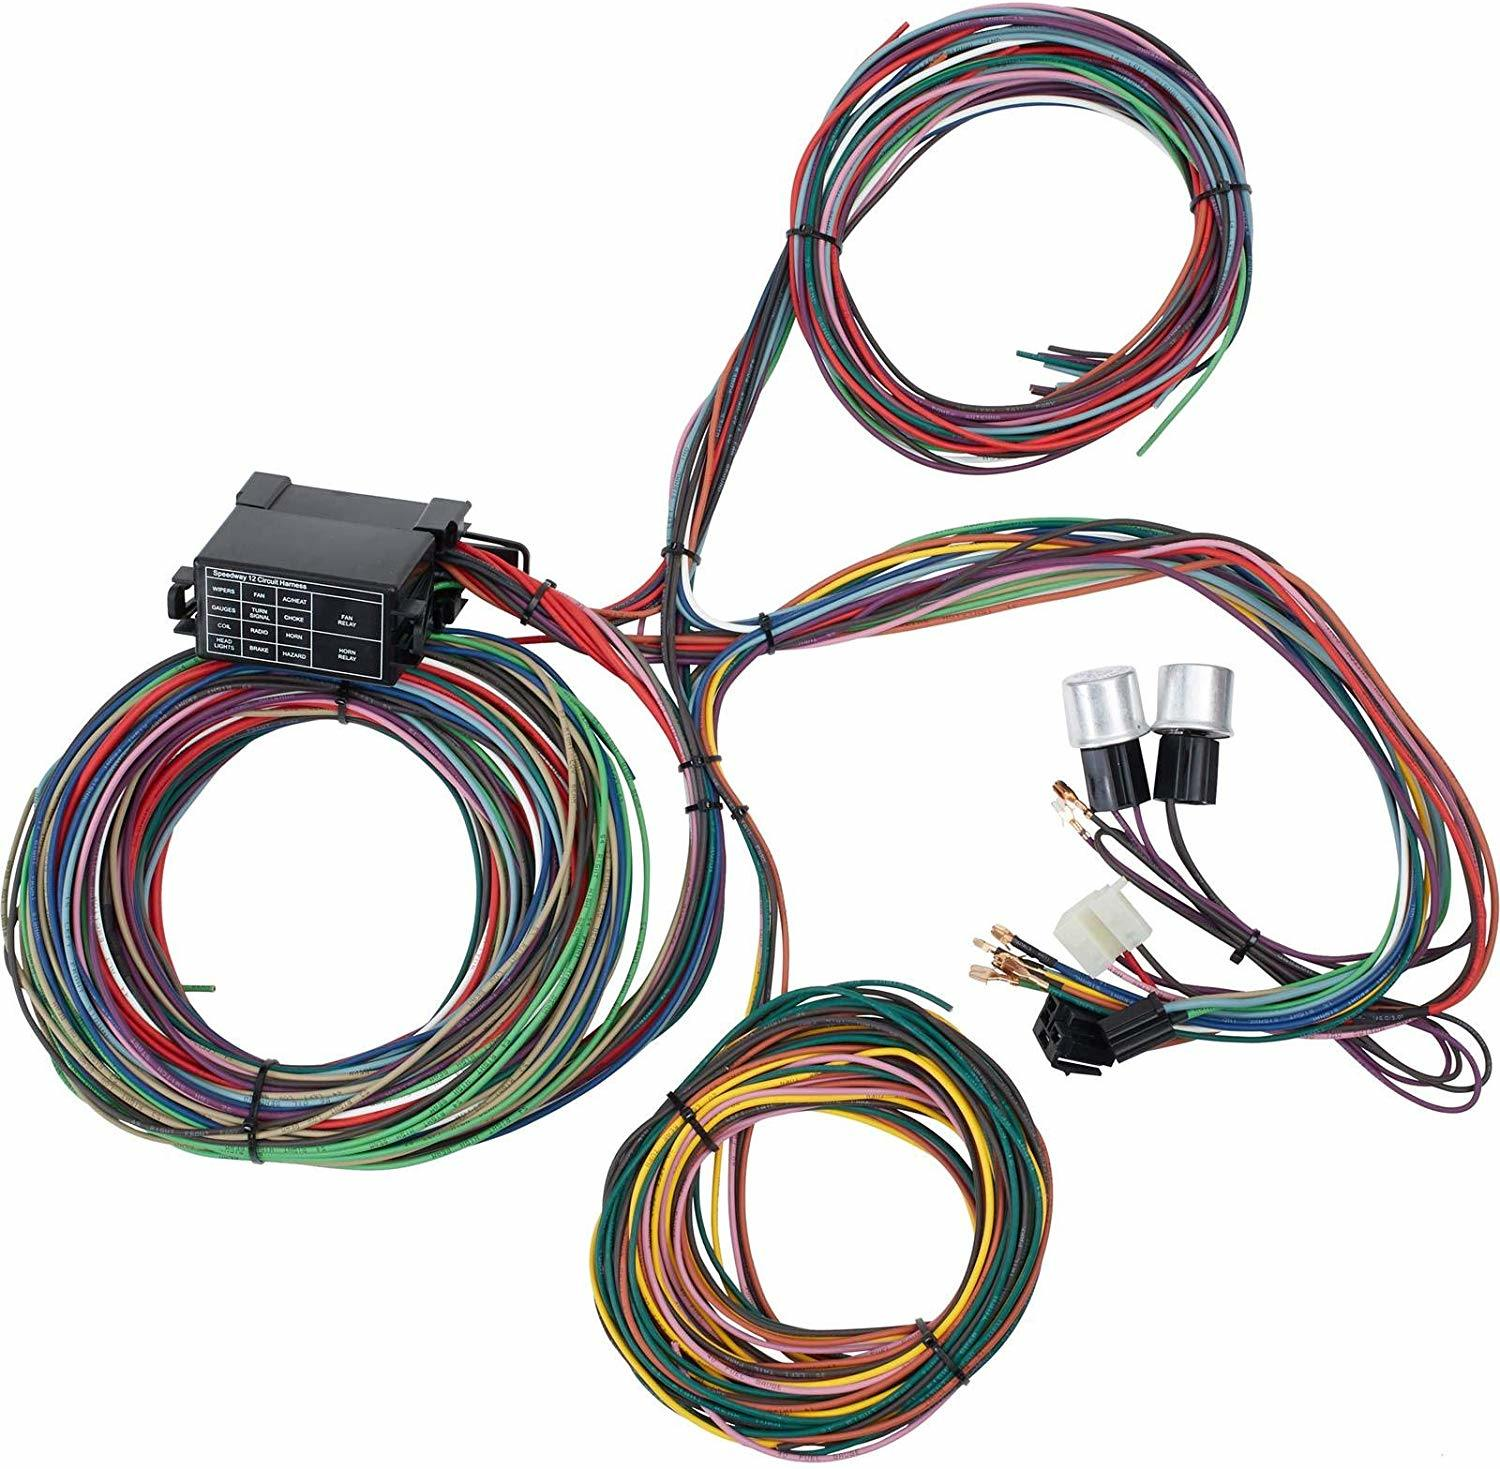 Parts U0026 Accessories Electric Wiring Harness For Chinese Manual Guide